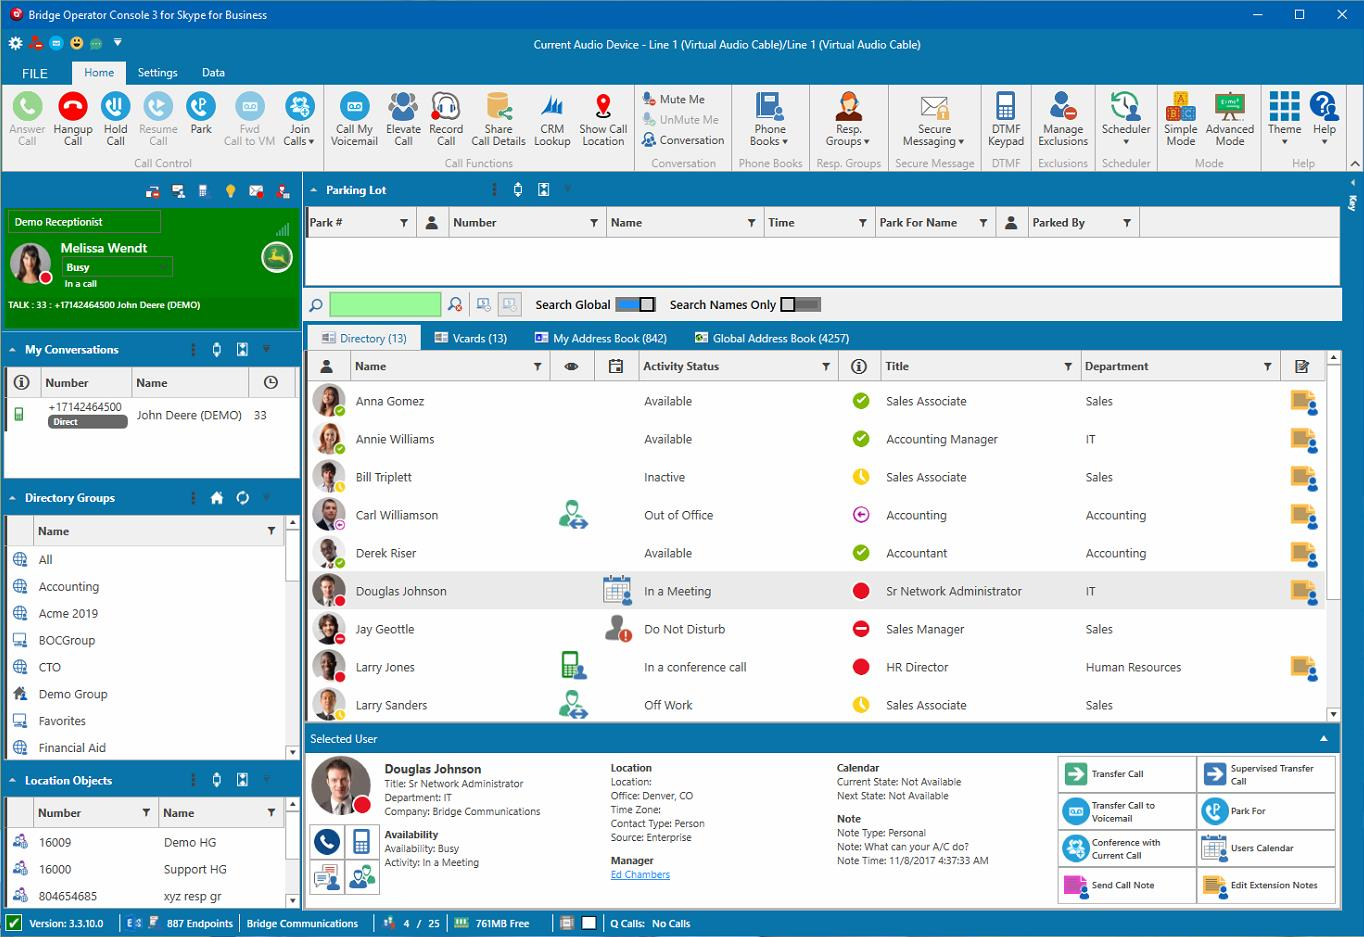 Bridge Lync (Skype for Business) Operator Console - Replace Microsoft Lync Attendant